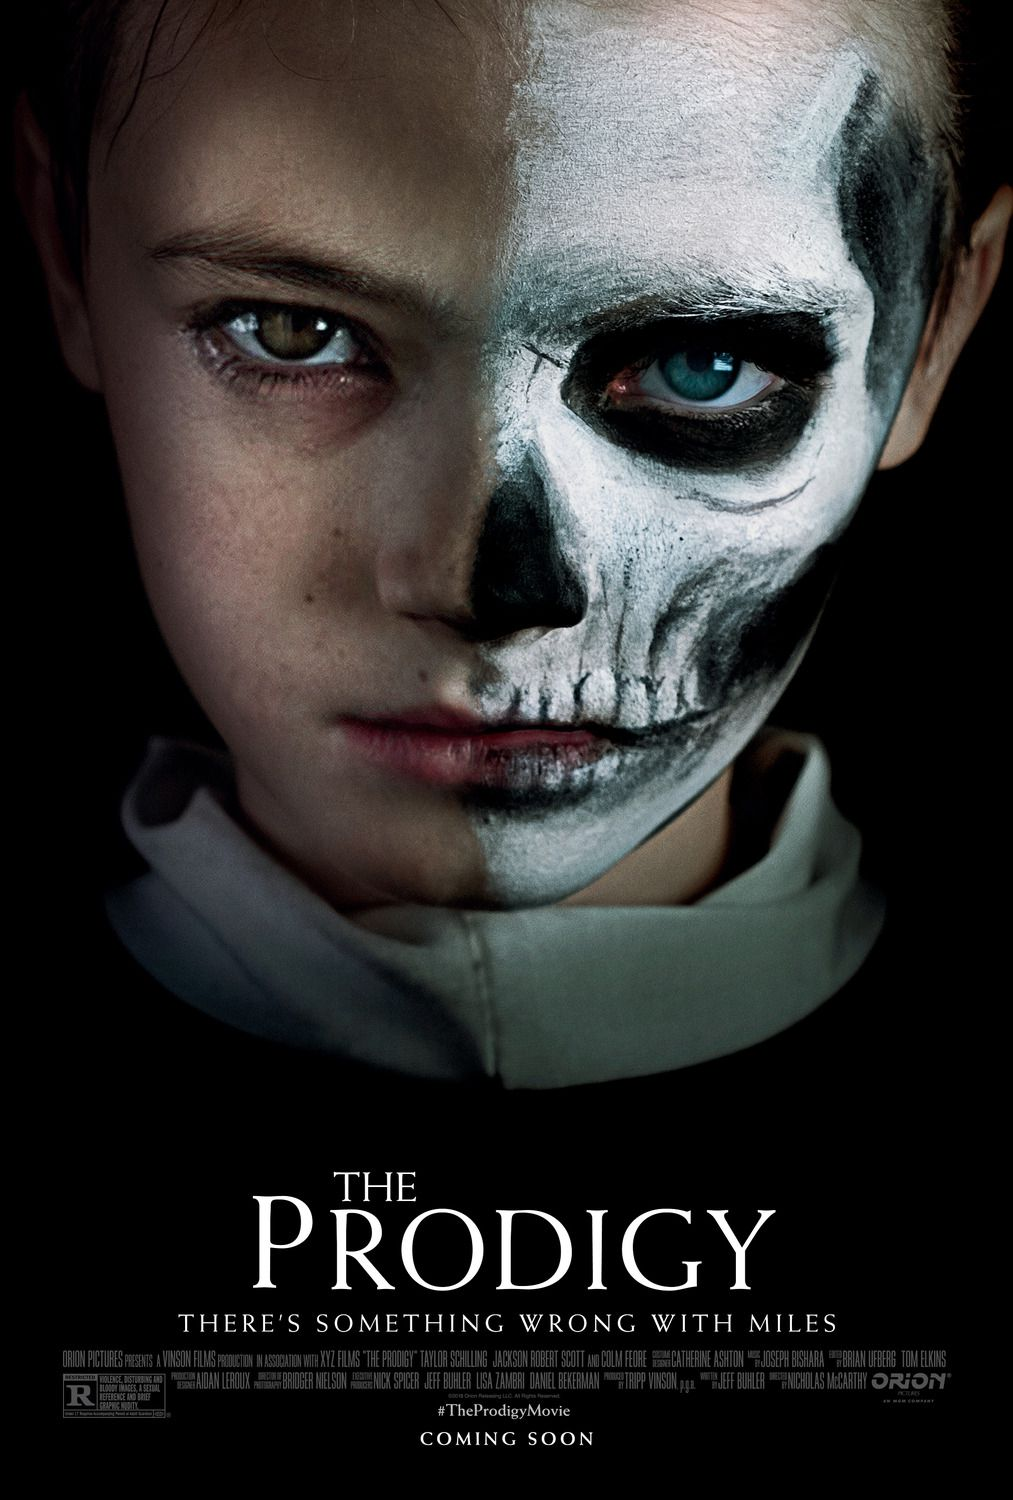 The Prodigy (2019)